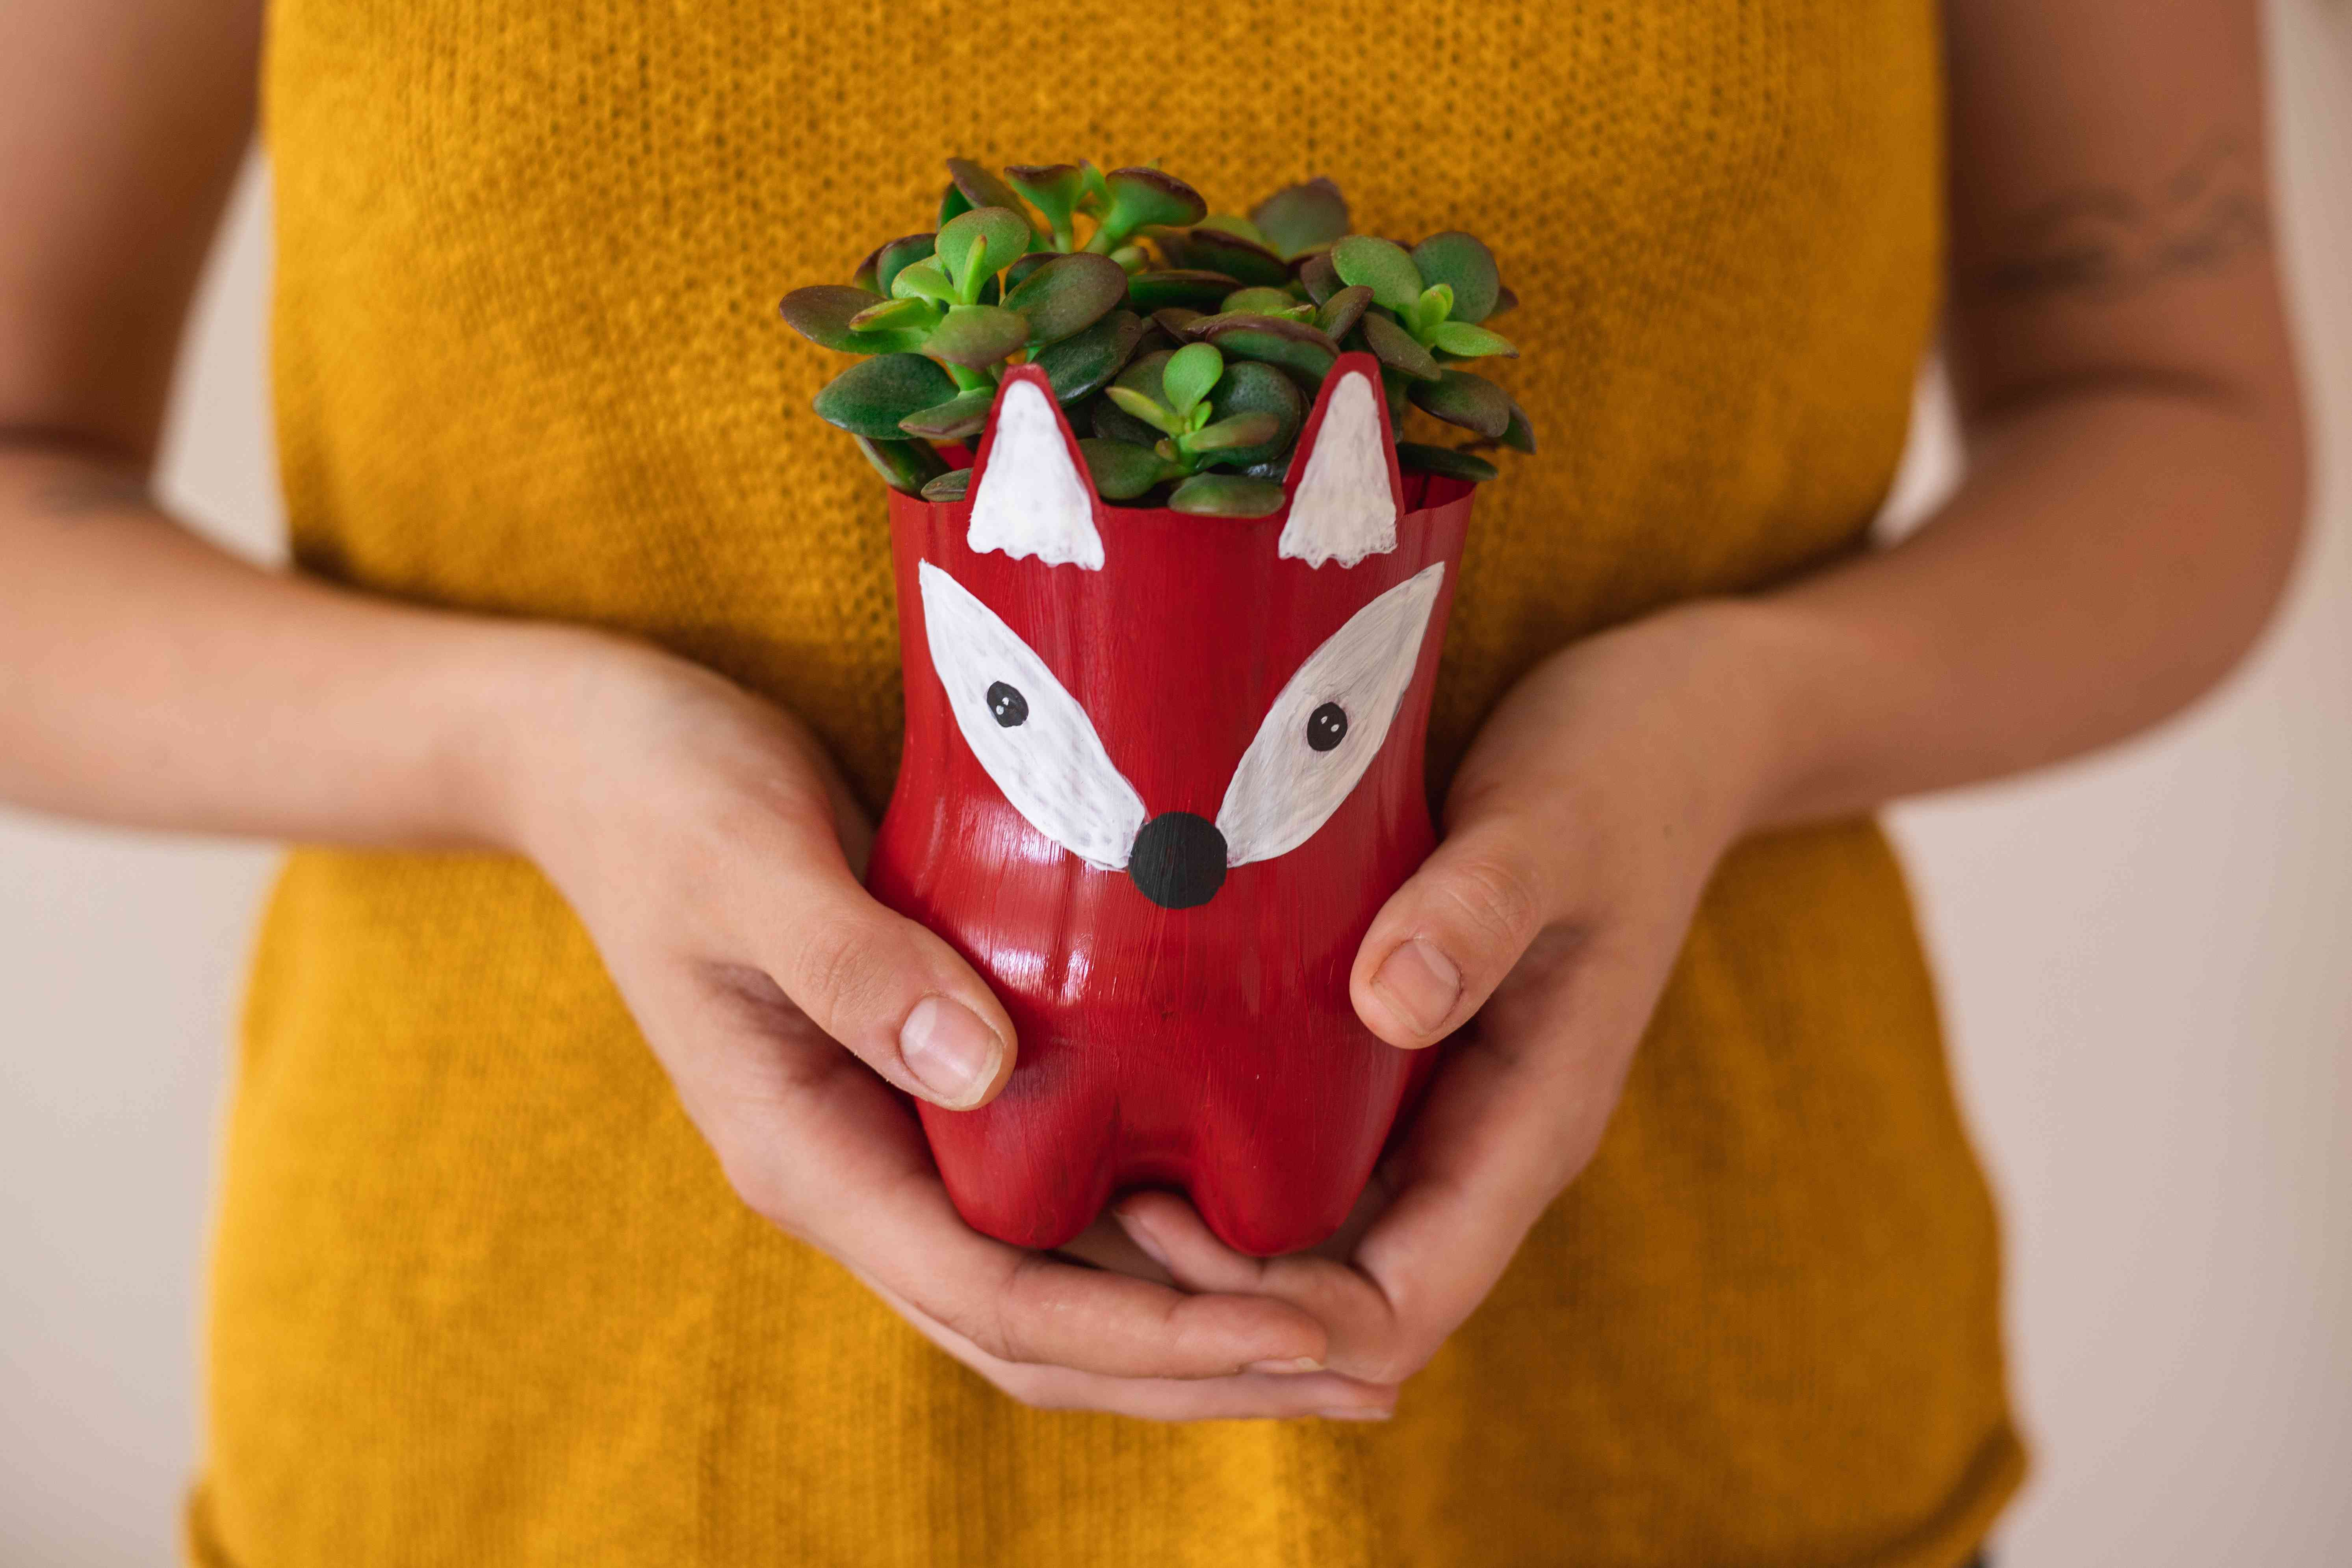 a plastic bottle has been painted and upcycled into a plant pot held by person in mustard shirt